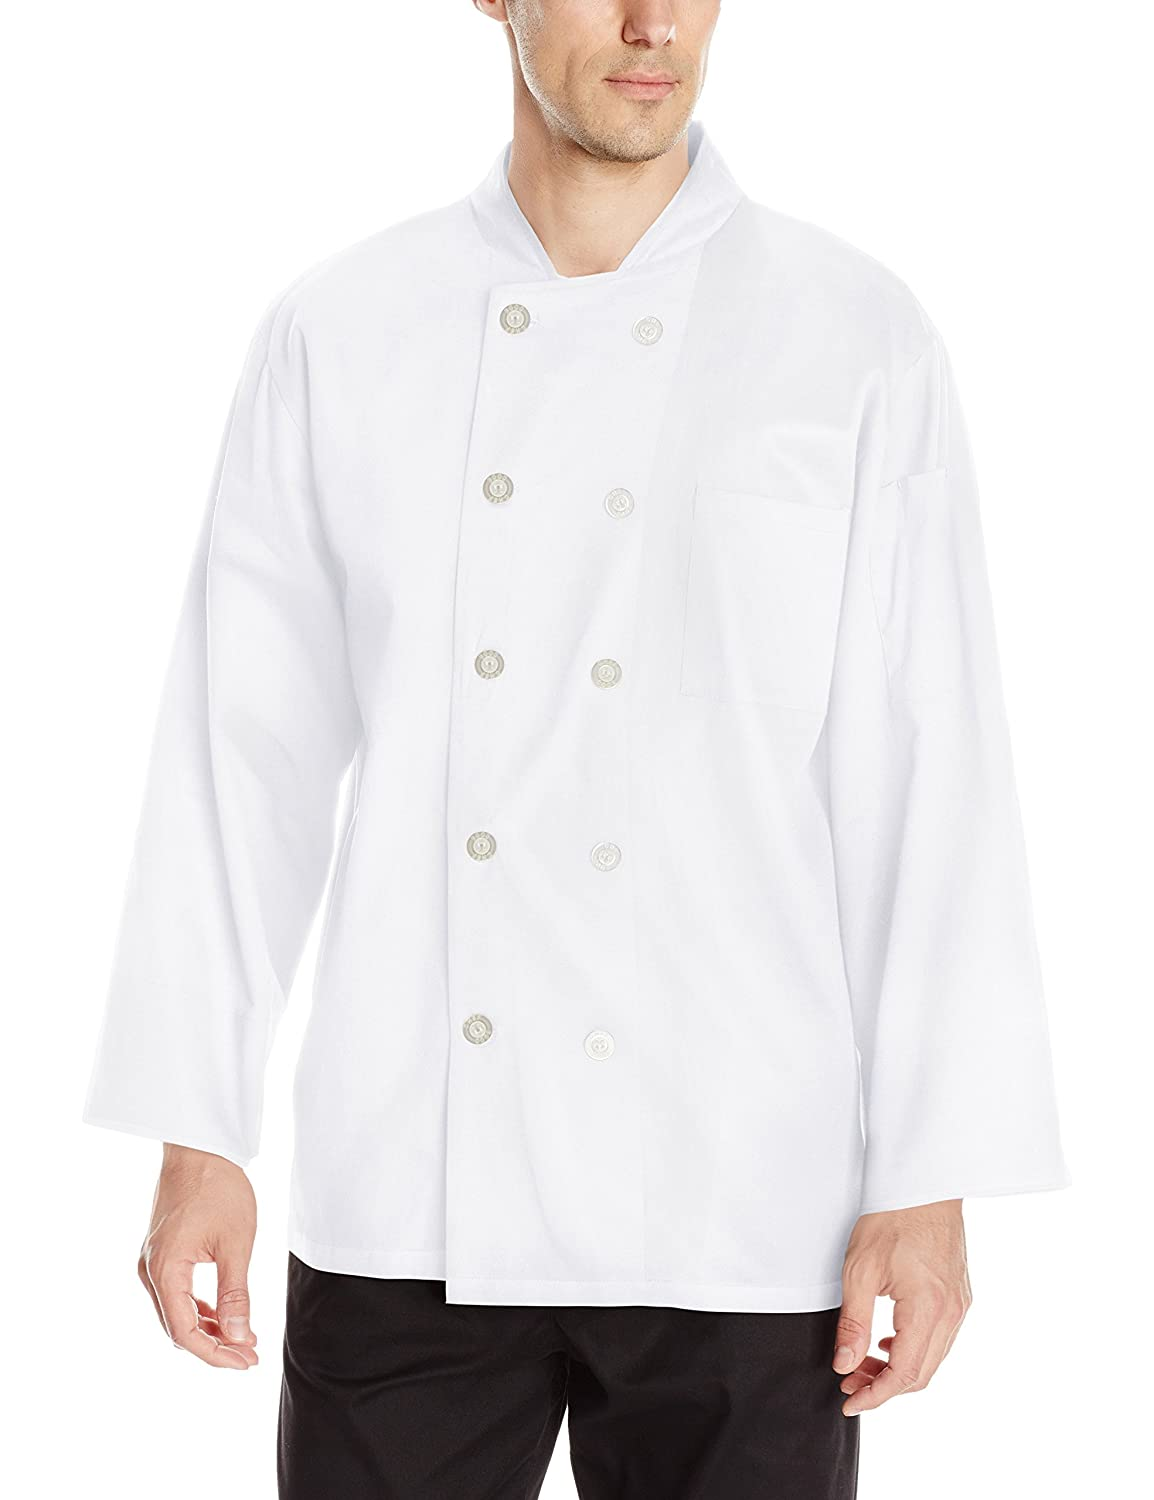 Chef Code mens Classic Men's 100% Premium Cotton Long Sleeve Chef Coat Chef Code Uniforms CC119